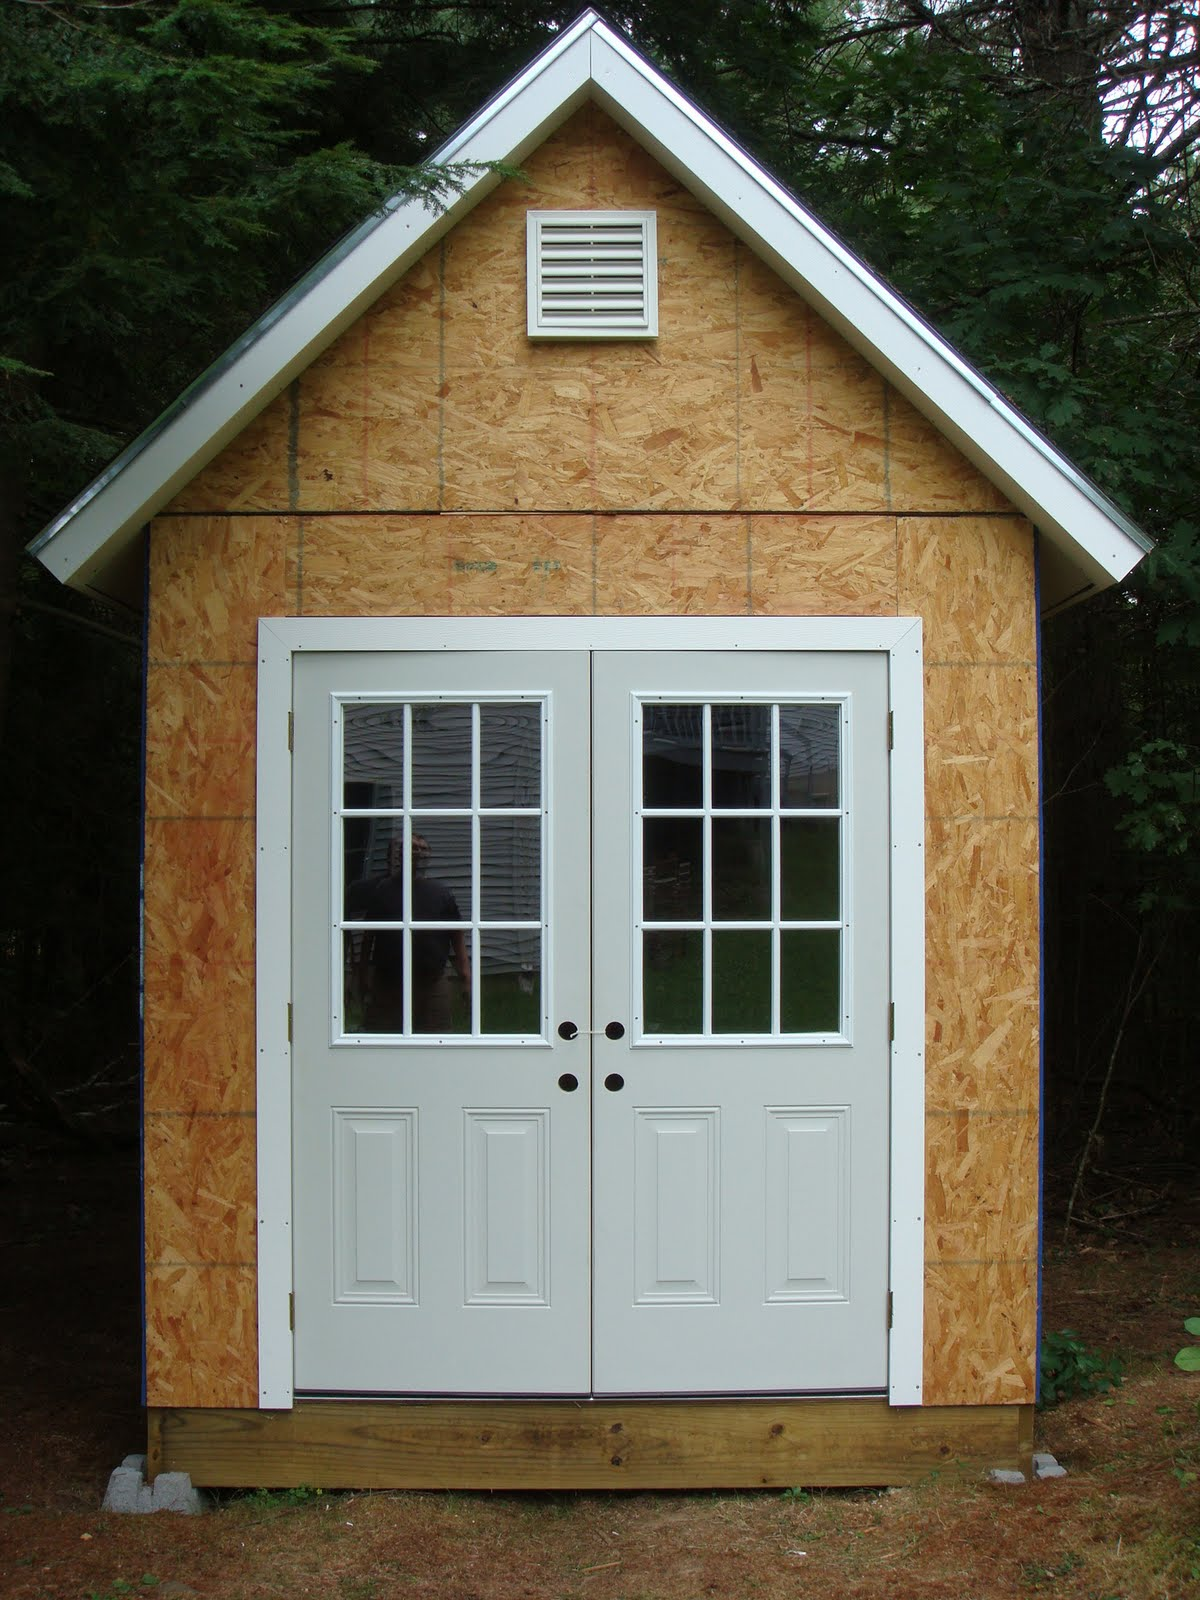 Shed Door Ideas narrow storage shed small storage shed along the side of a house historic shed Shed Door Design Shed Door Design Ideas